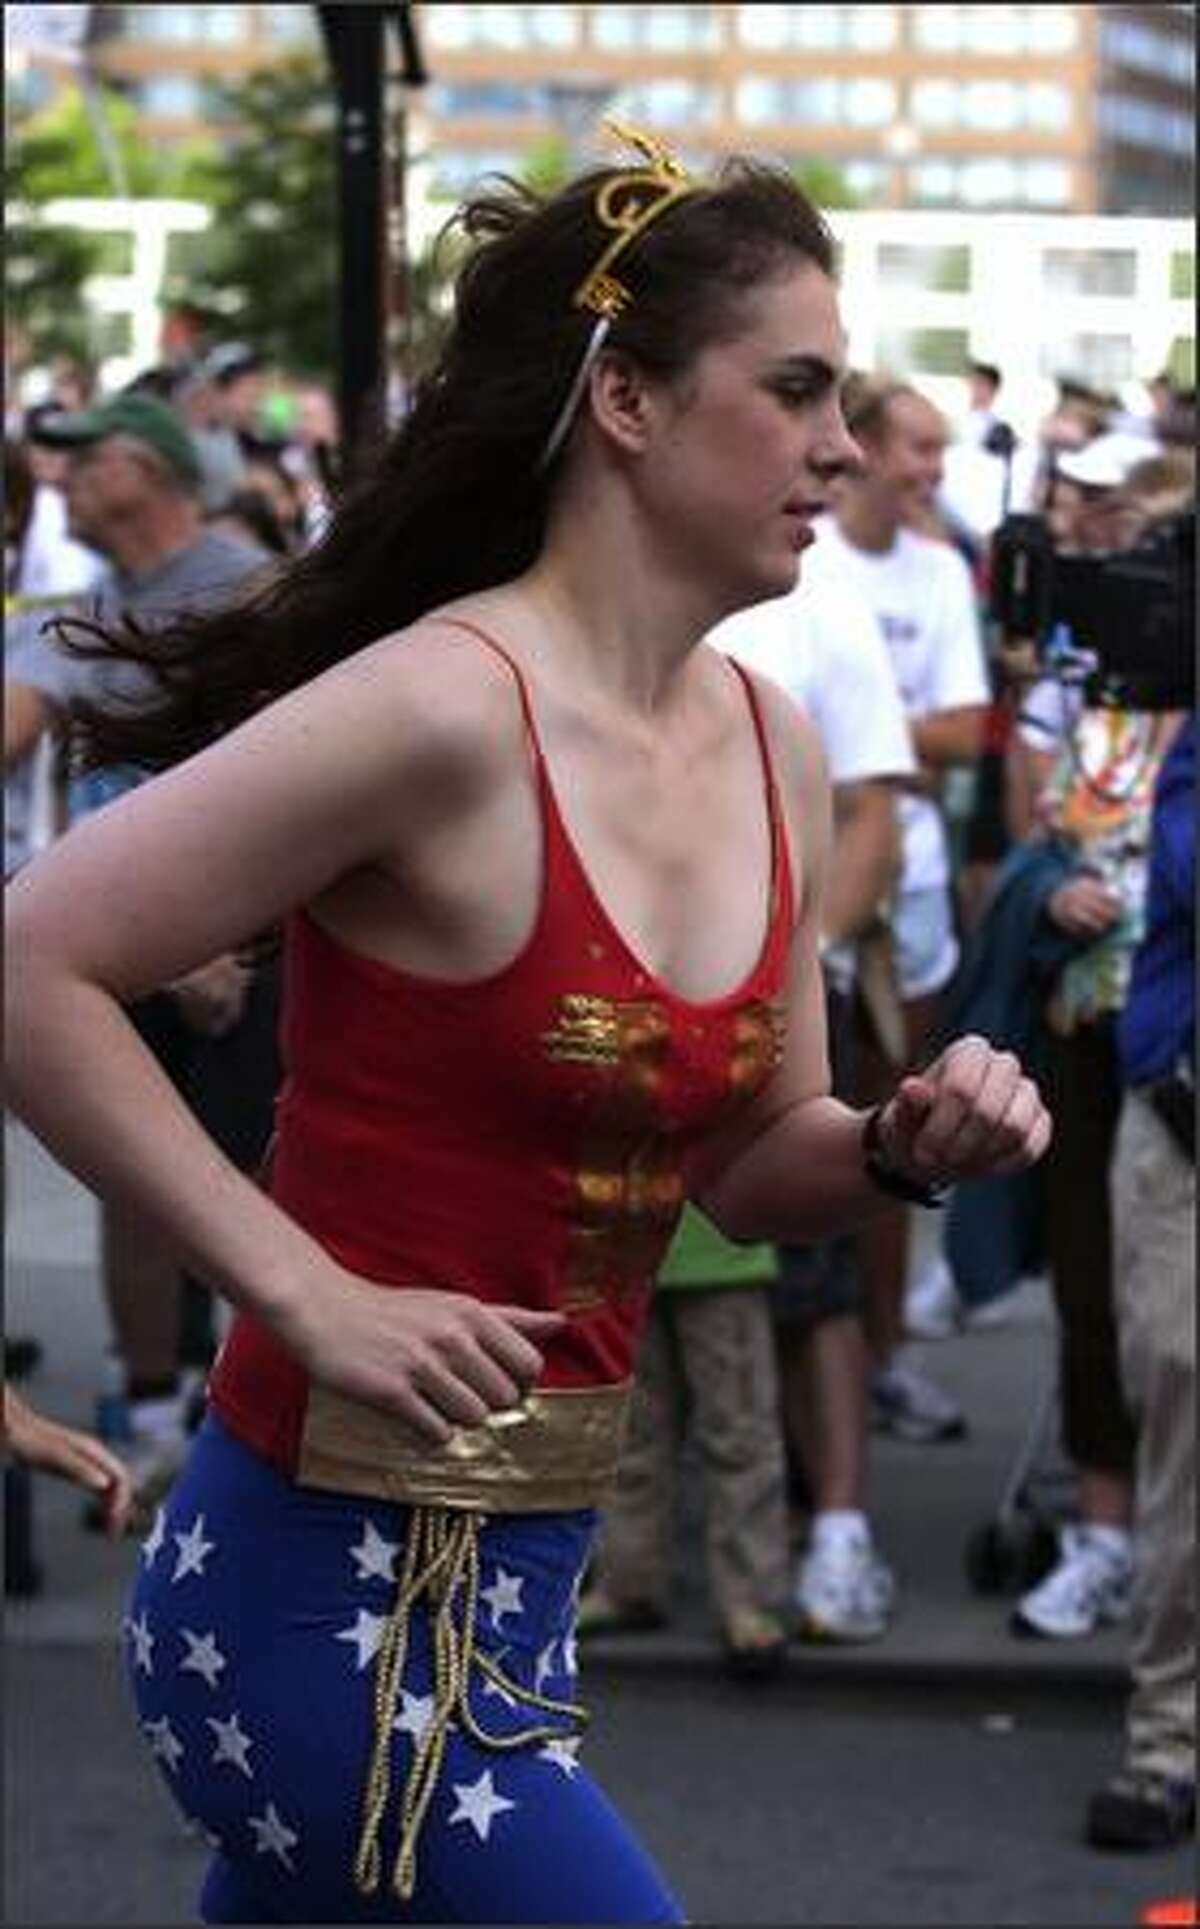 A participant dressed as Wonder Woman starts the 8K Torchlight Run at Seafair.